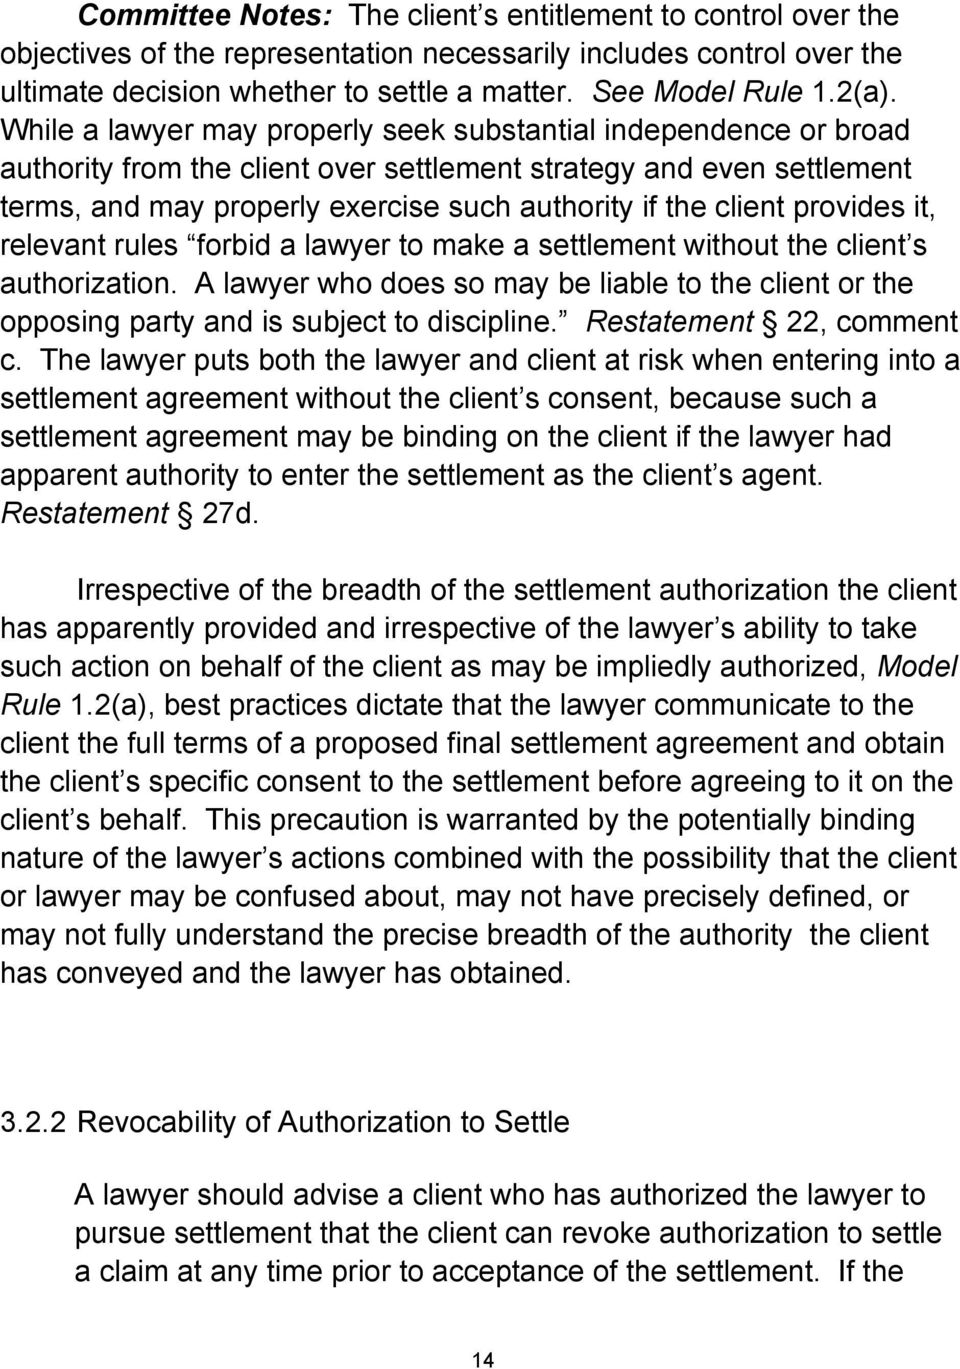 client provides it, relevant rules forbid a lawyer to make a settlement without the client s authorization.